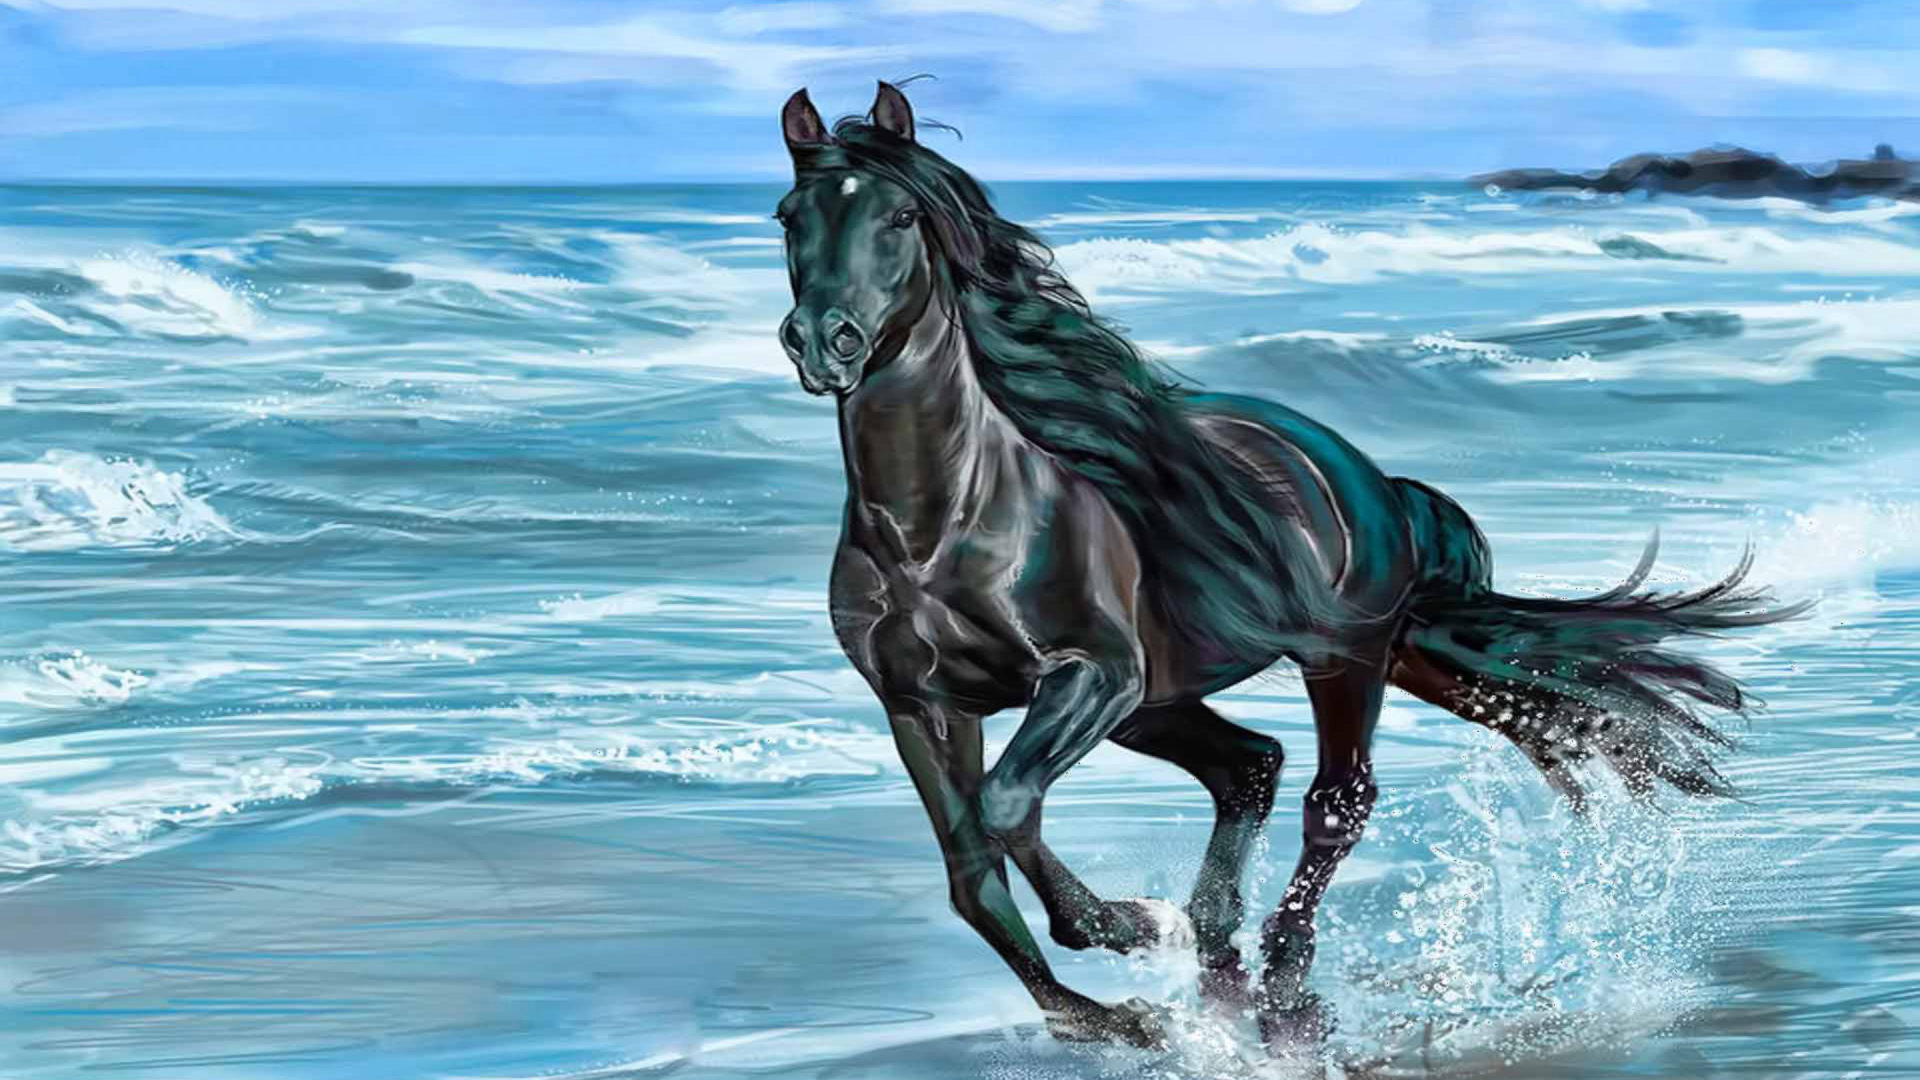 Cute Small Animals Wallpapers Running Horse Animals Beach Beauty Horse Nature Sea Wave